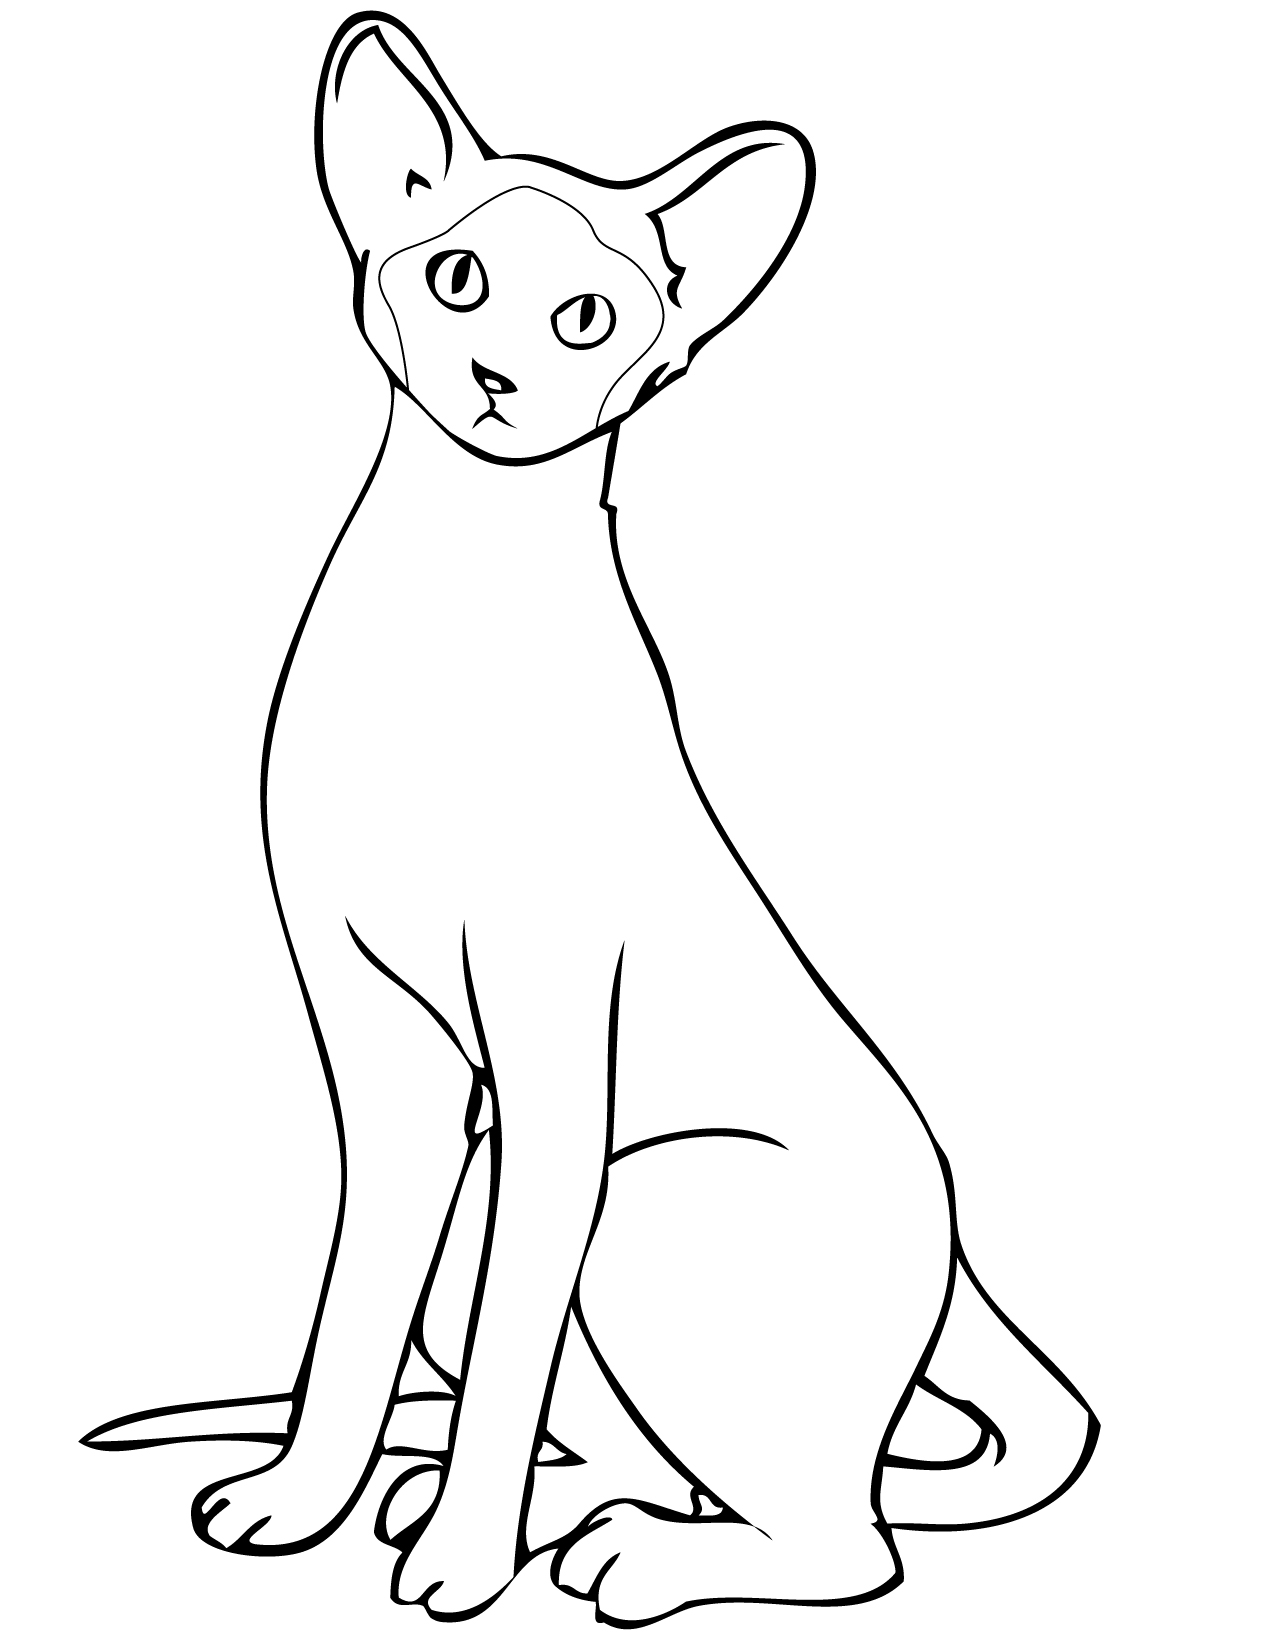 siamese cat coloring pages siamese cat animals adult coloring pages pages siamese coloring cat